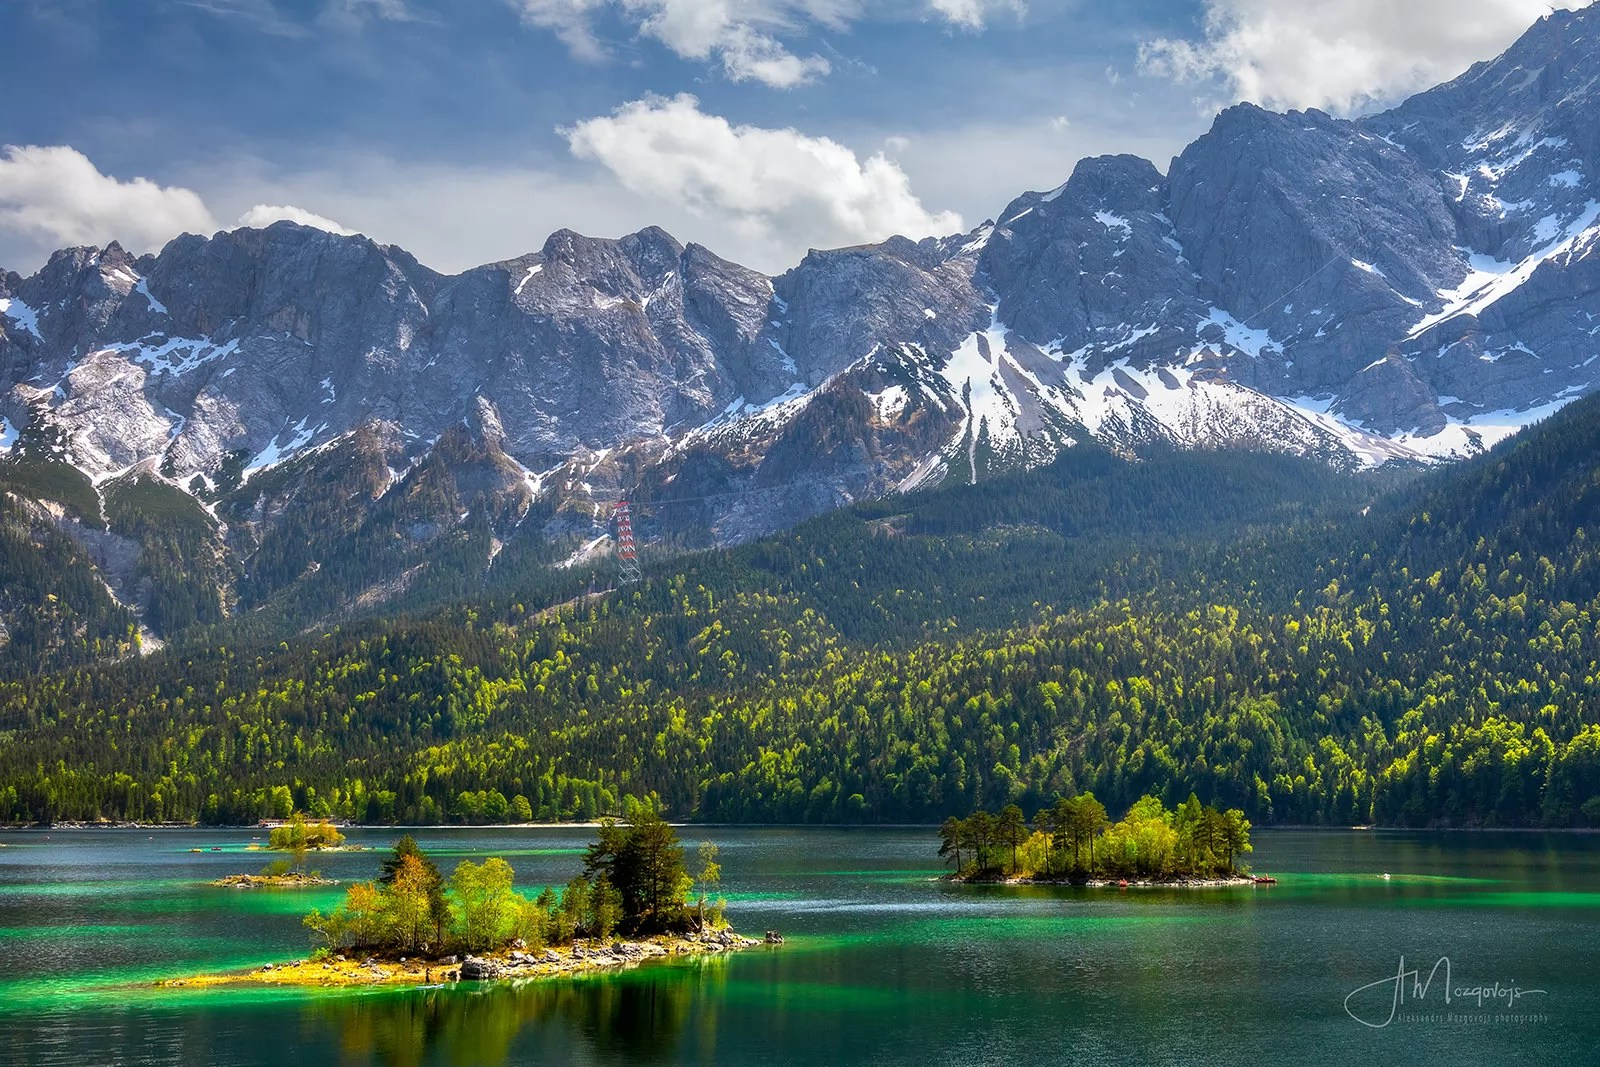 View of lake Eibsee